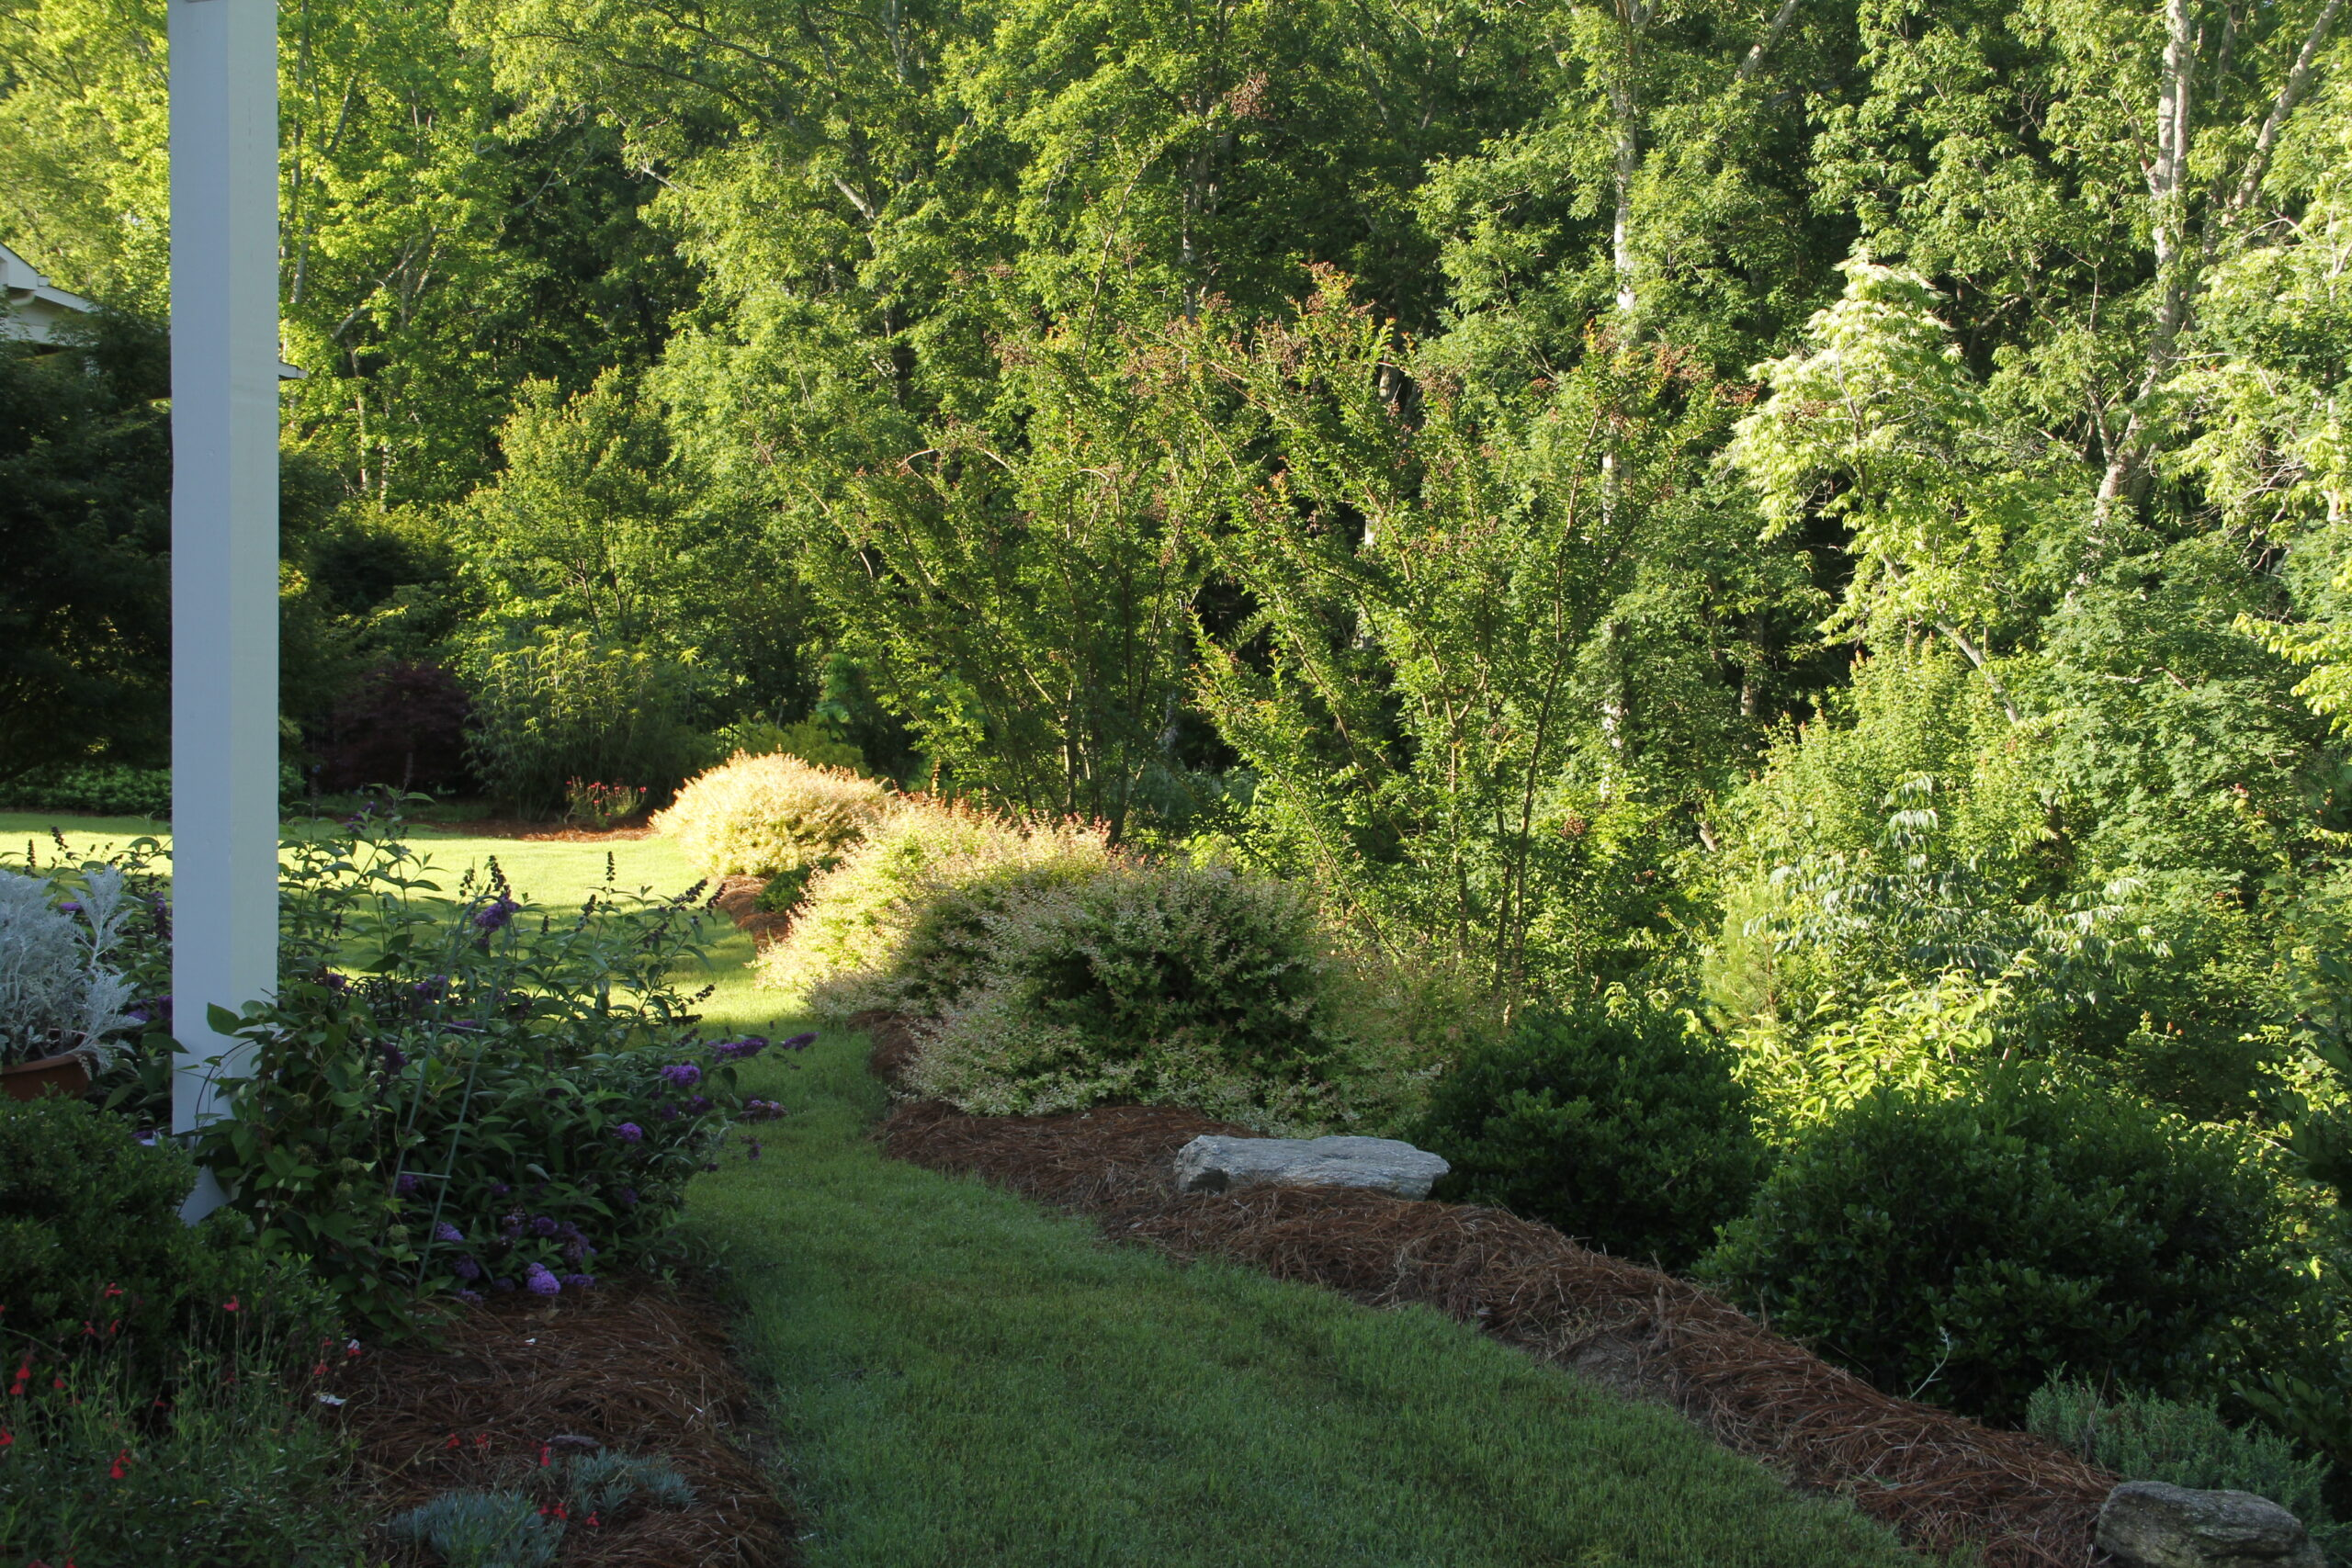 landscaping companies near me - Backyard Landscaping After IMG